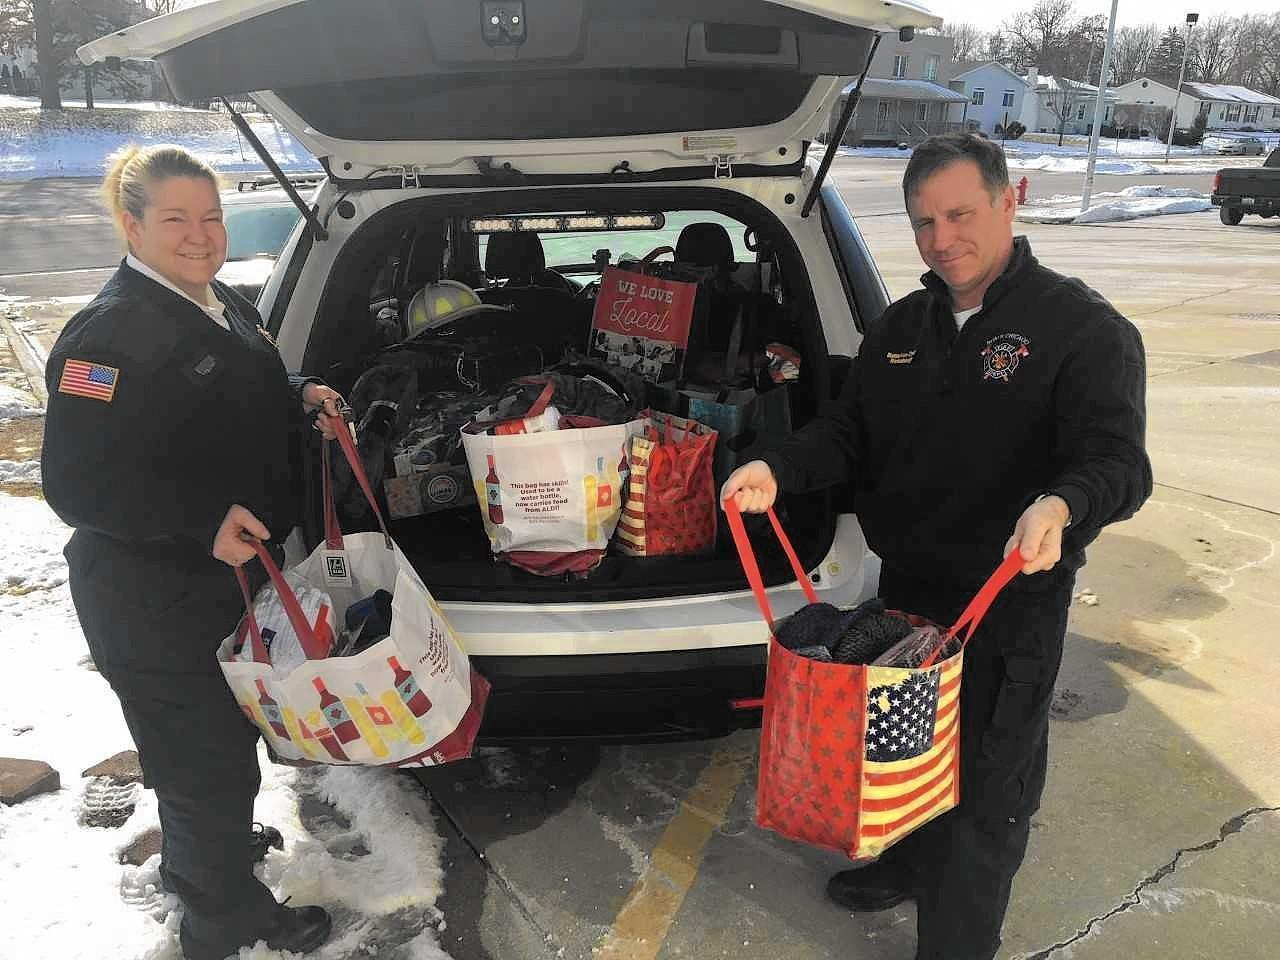 North Chicago fire chief heading to Women's March Chicago with donations for the homeless